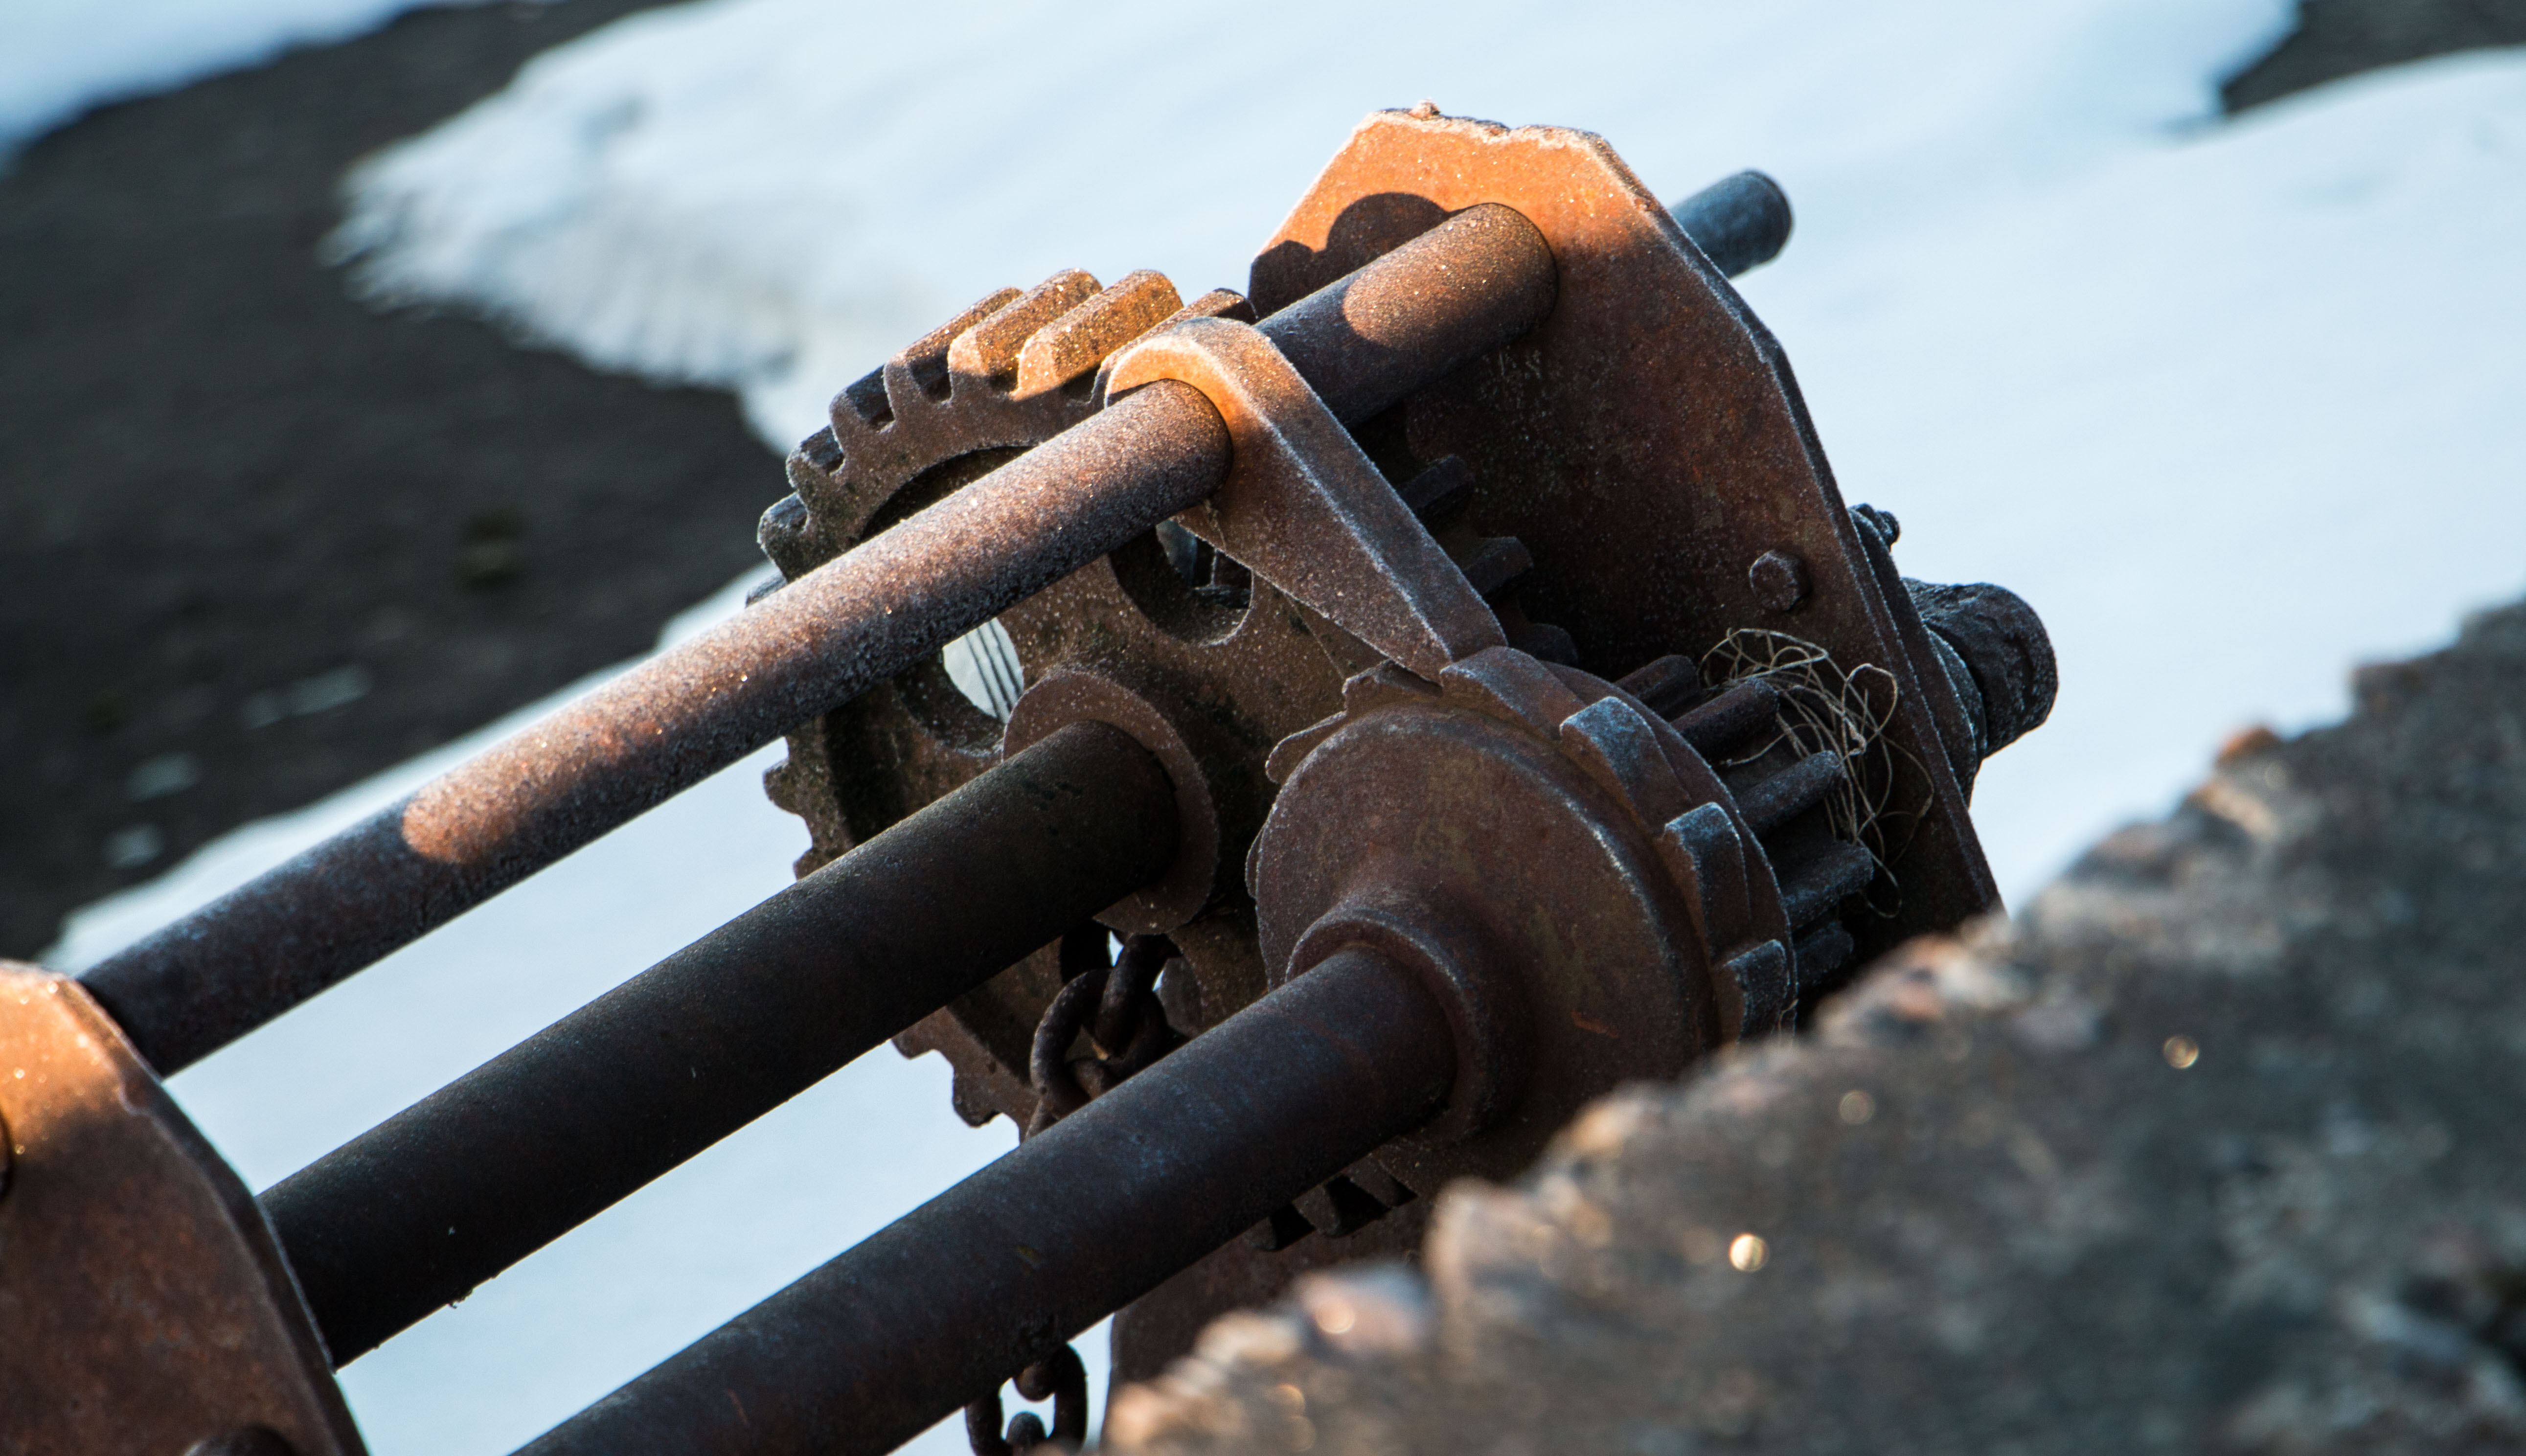 Rusty Winch, Winter, Old, Winch, Theme, HQ Photo